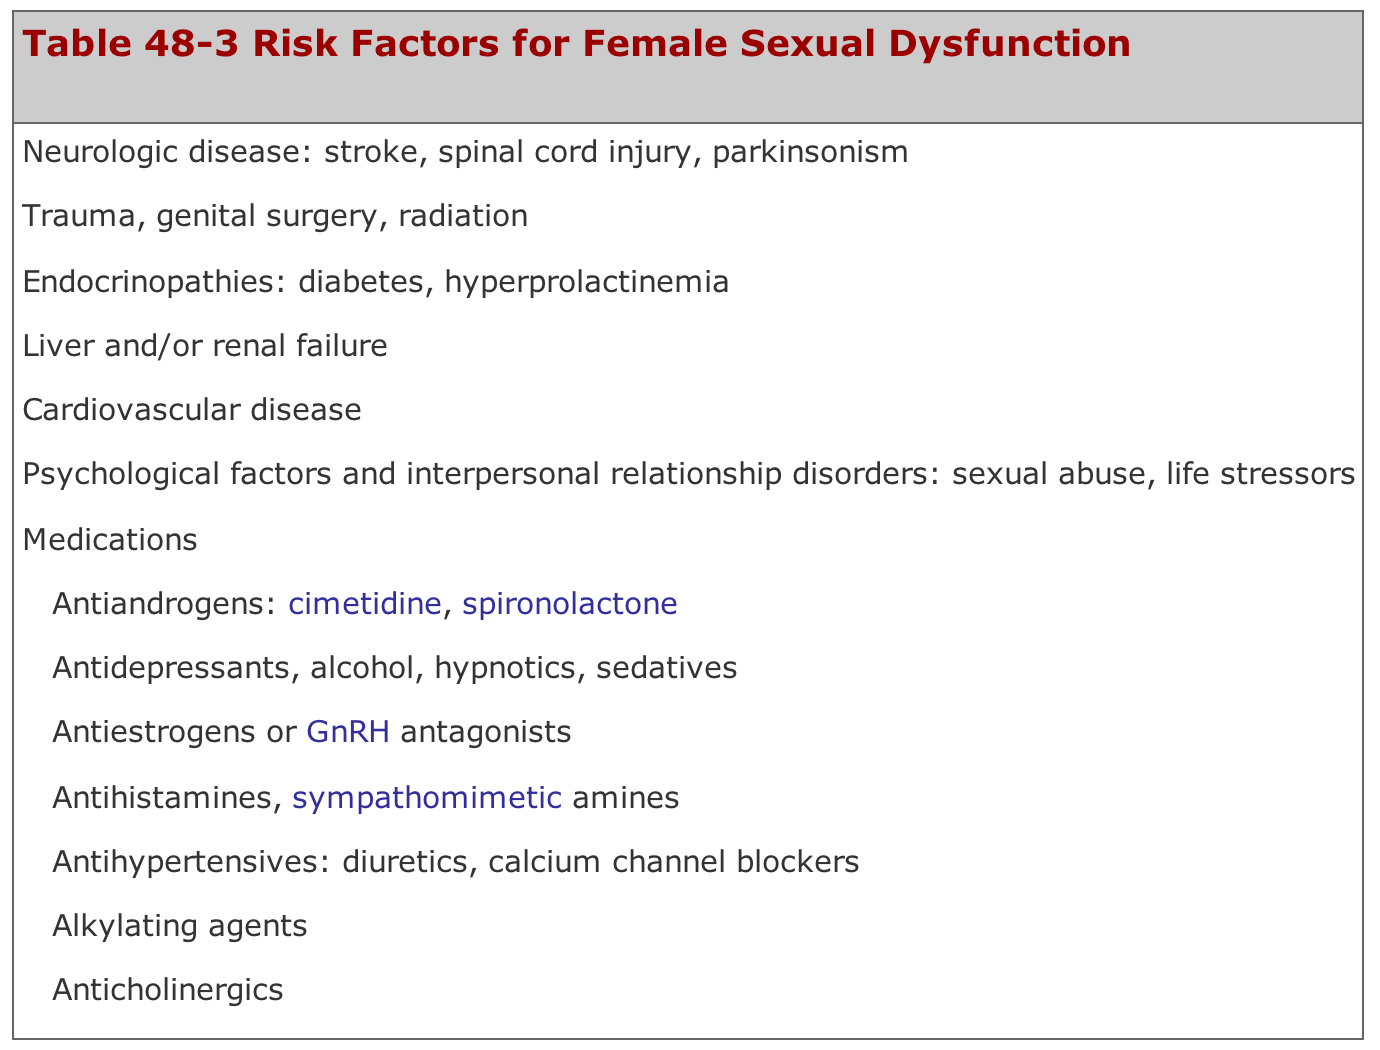 Diuretics sexual dysfunction